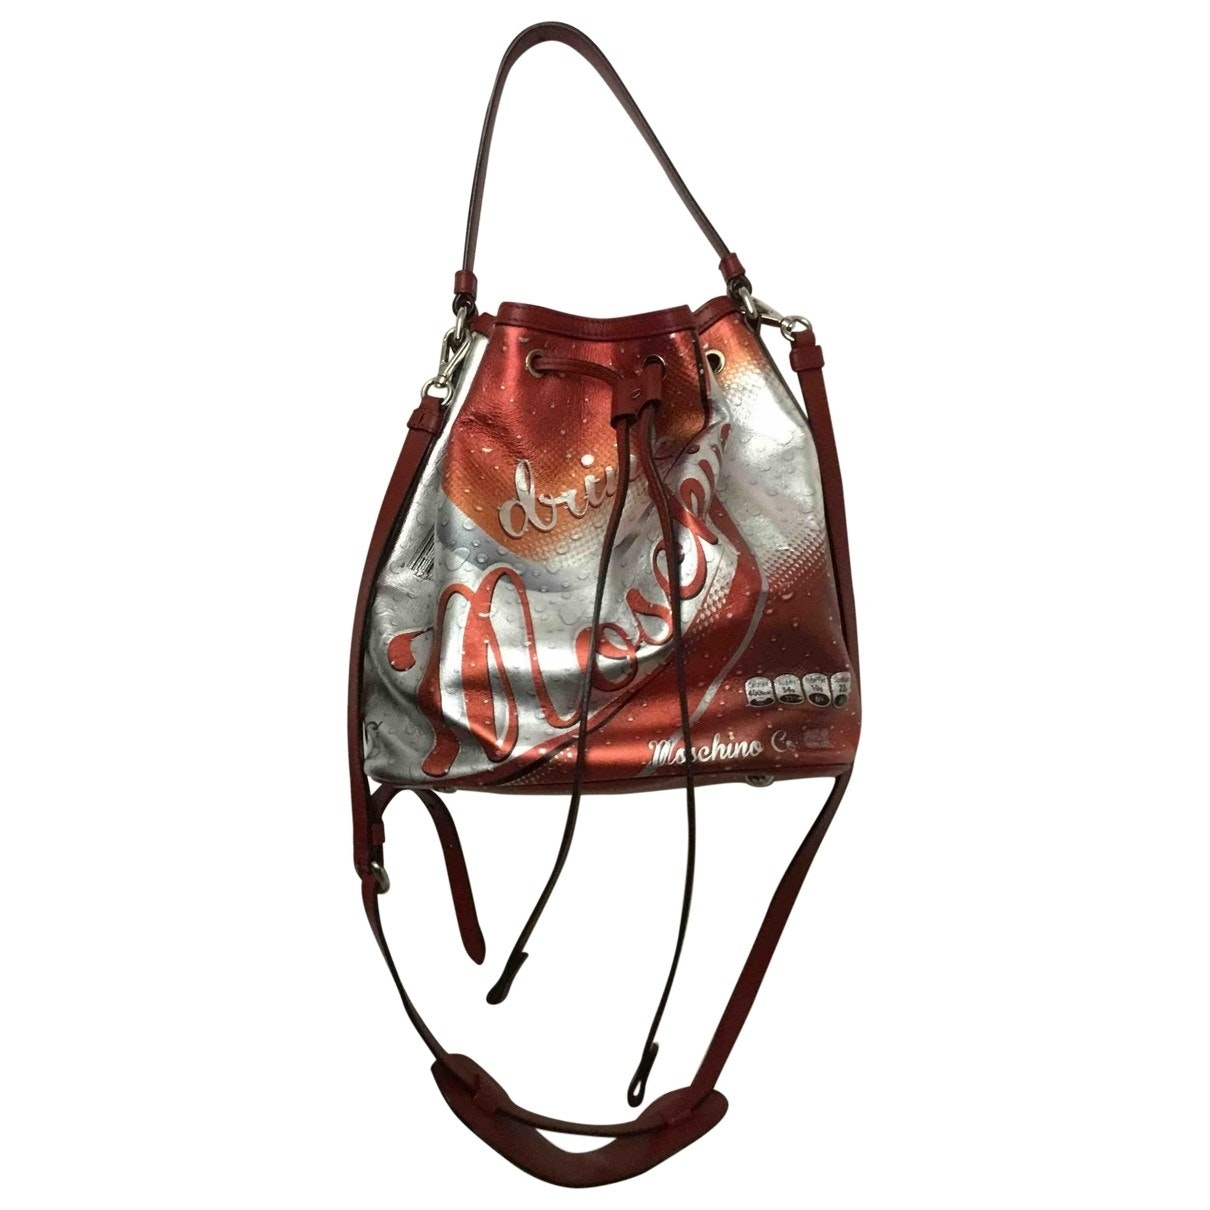 Moschino - Sac a main   pour femme en toile - rouge